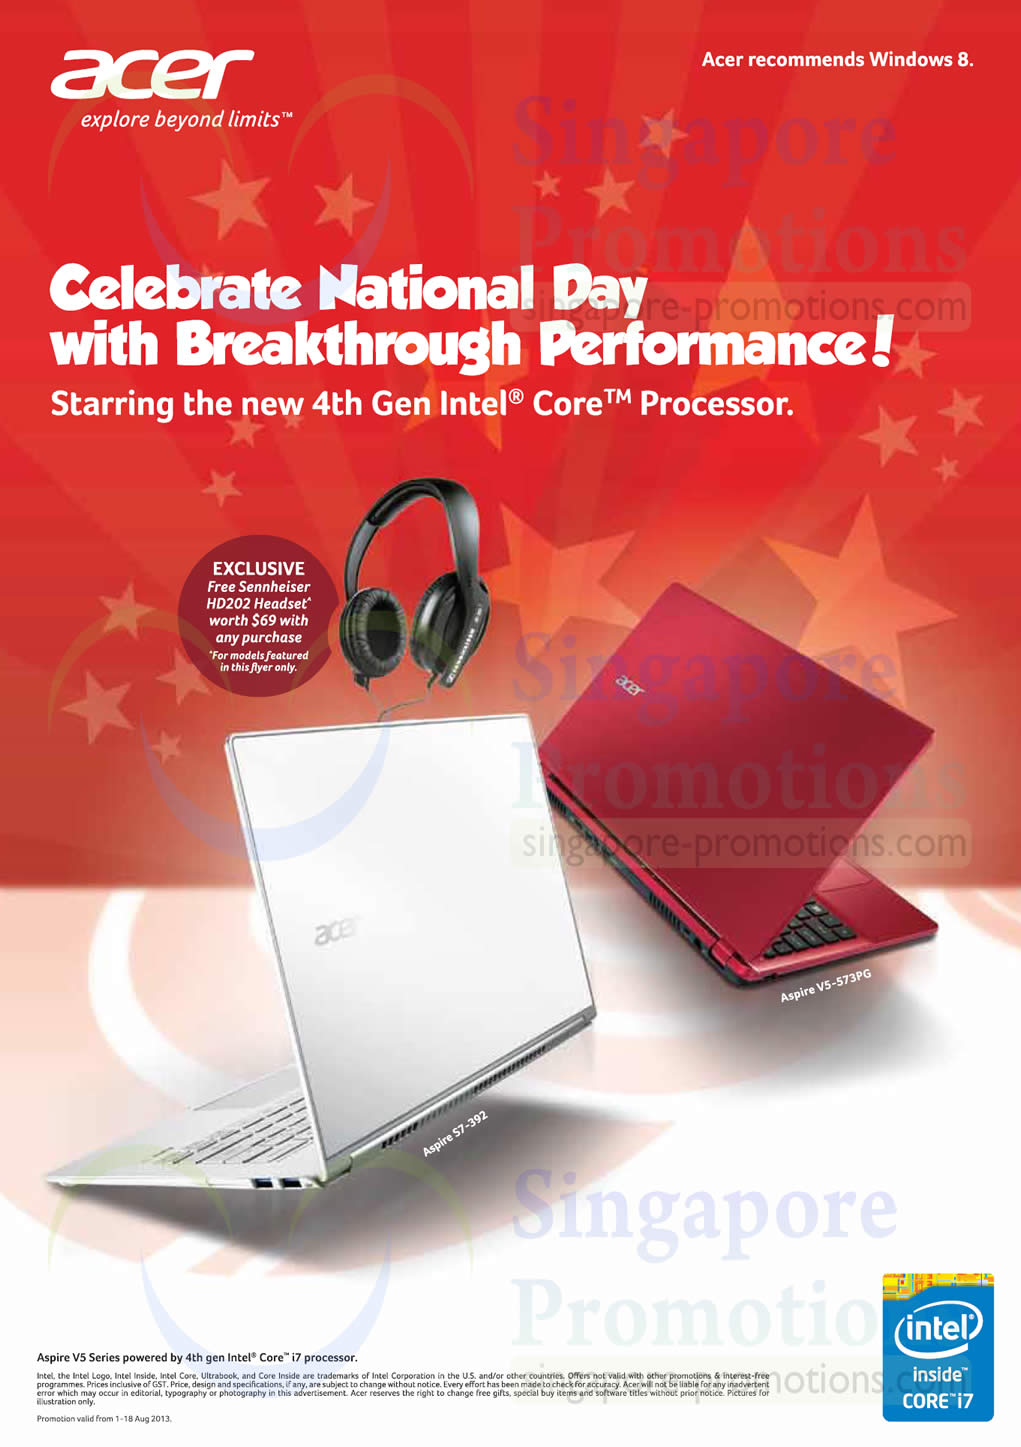 National Day Promotions, 4th Gen Intel Core Processor